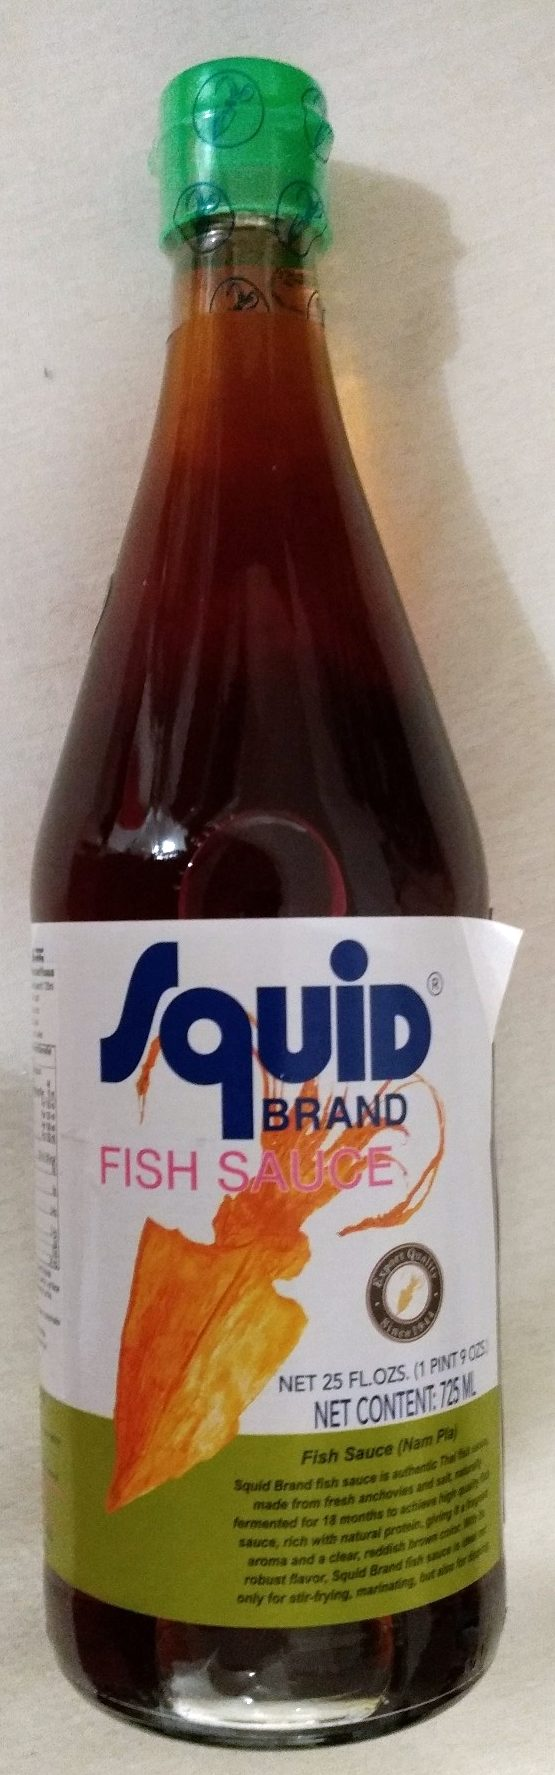 Squid brand fish sauce 725ml for Fish sauce brands